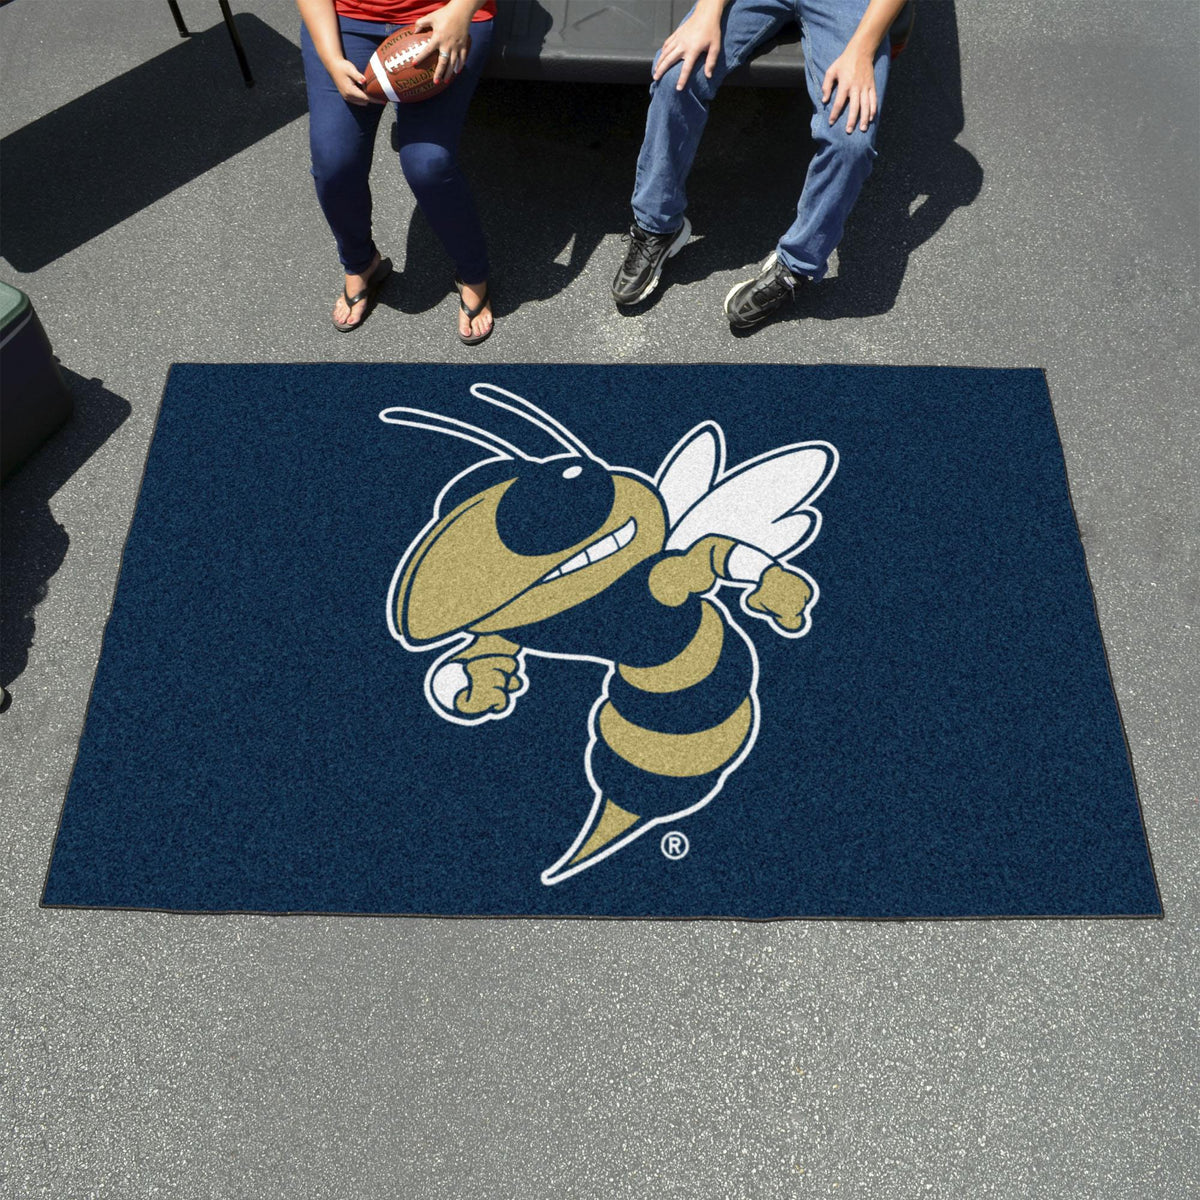 Collegiate - Ulti-Mat: A - L Collegiate Mats, Rectangular Mats, Ulti-Mat, Collegiate, Home Fan Mats Georgia Tech 2